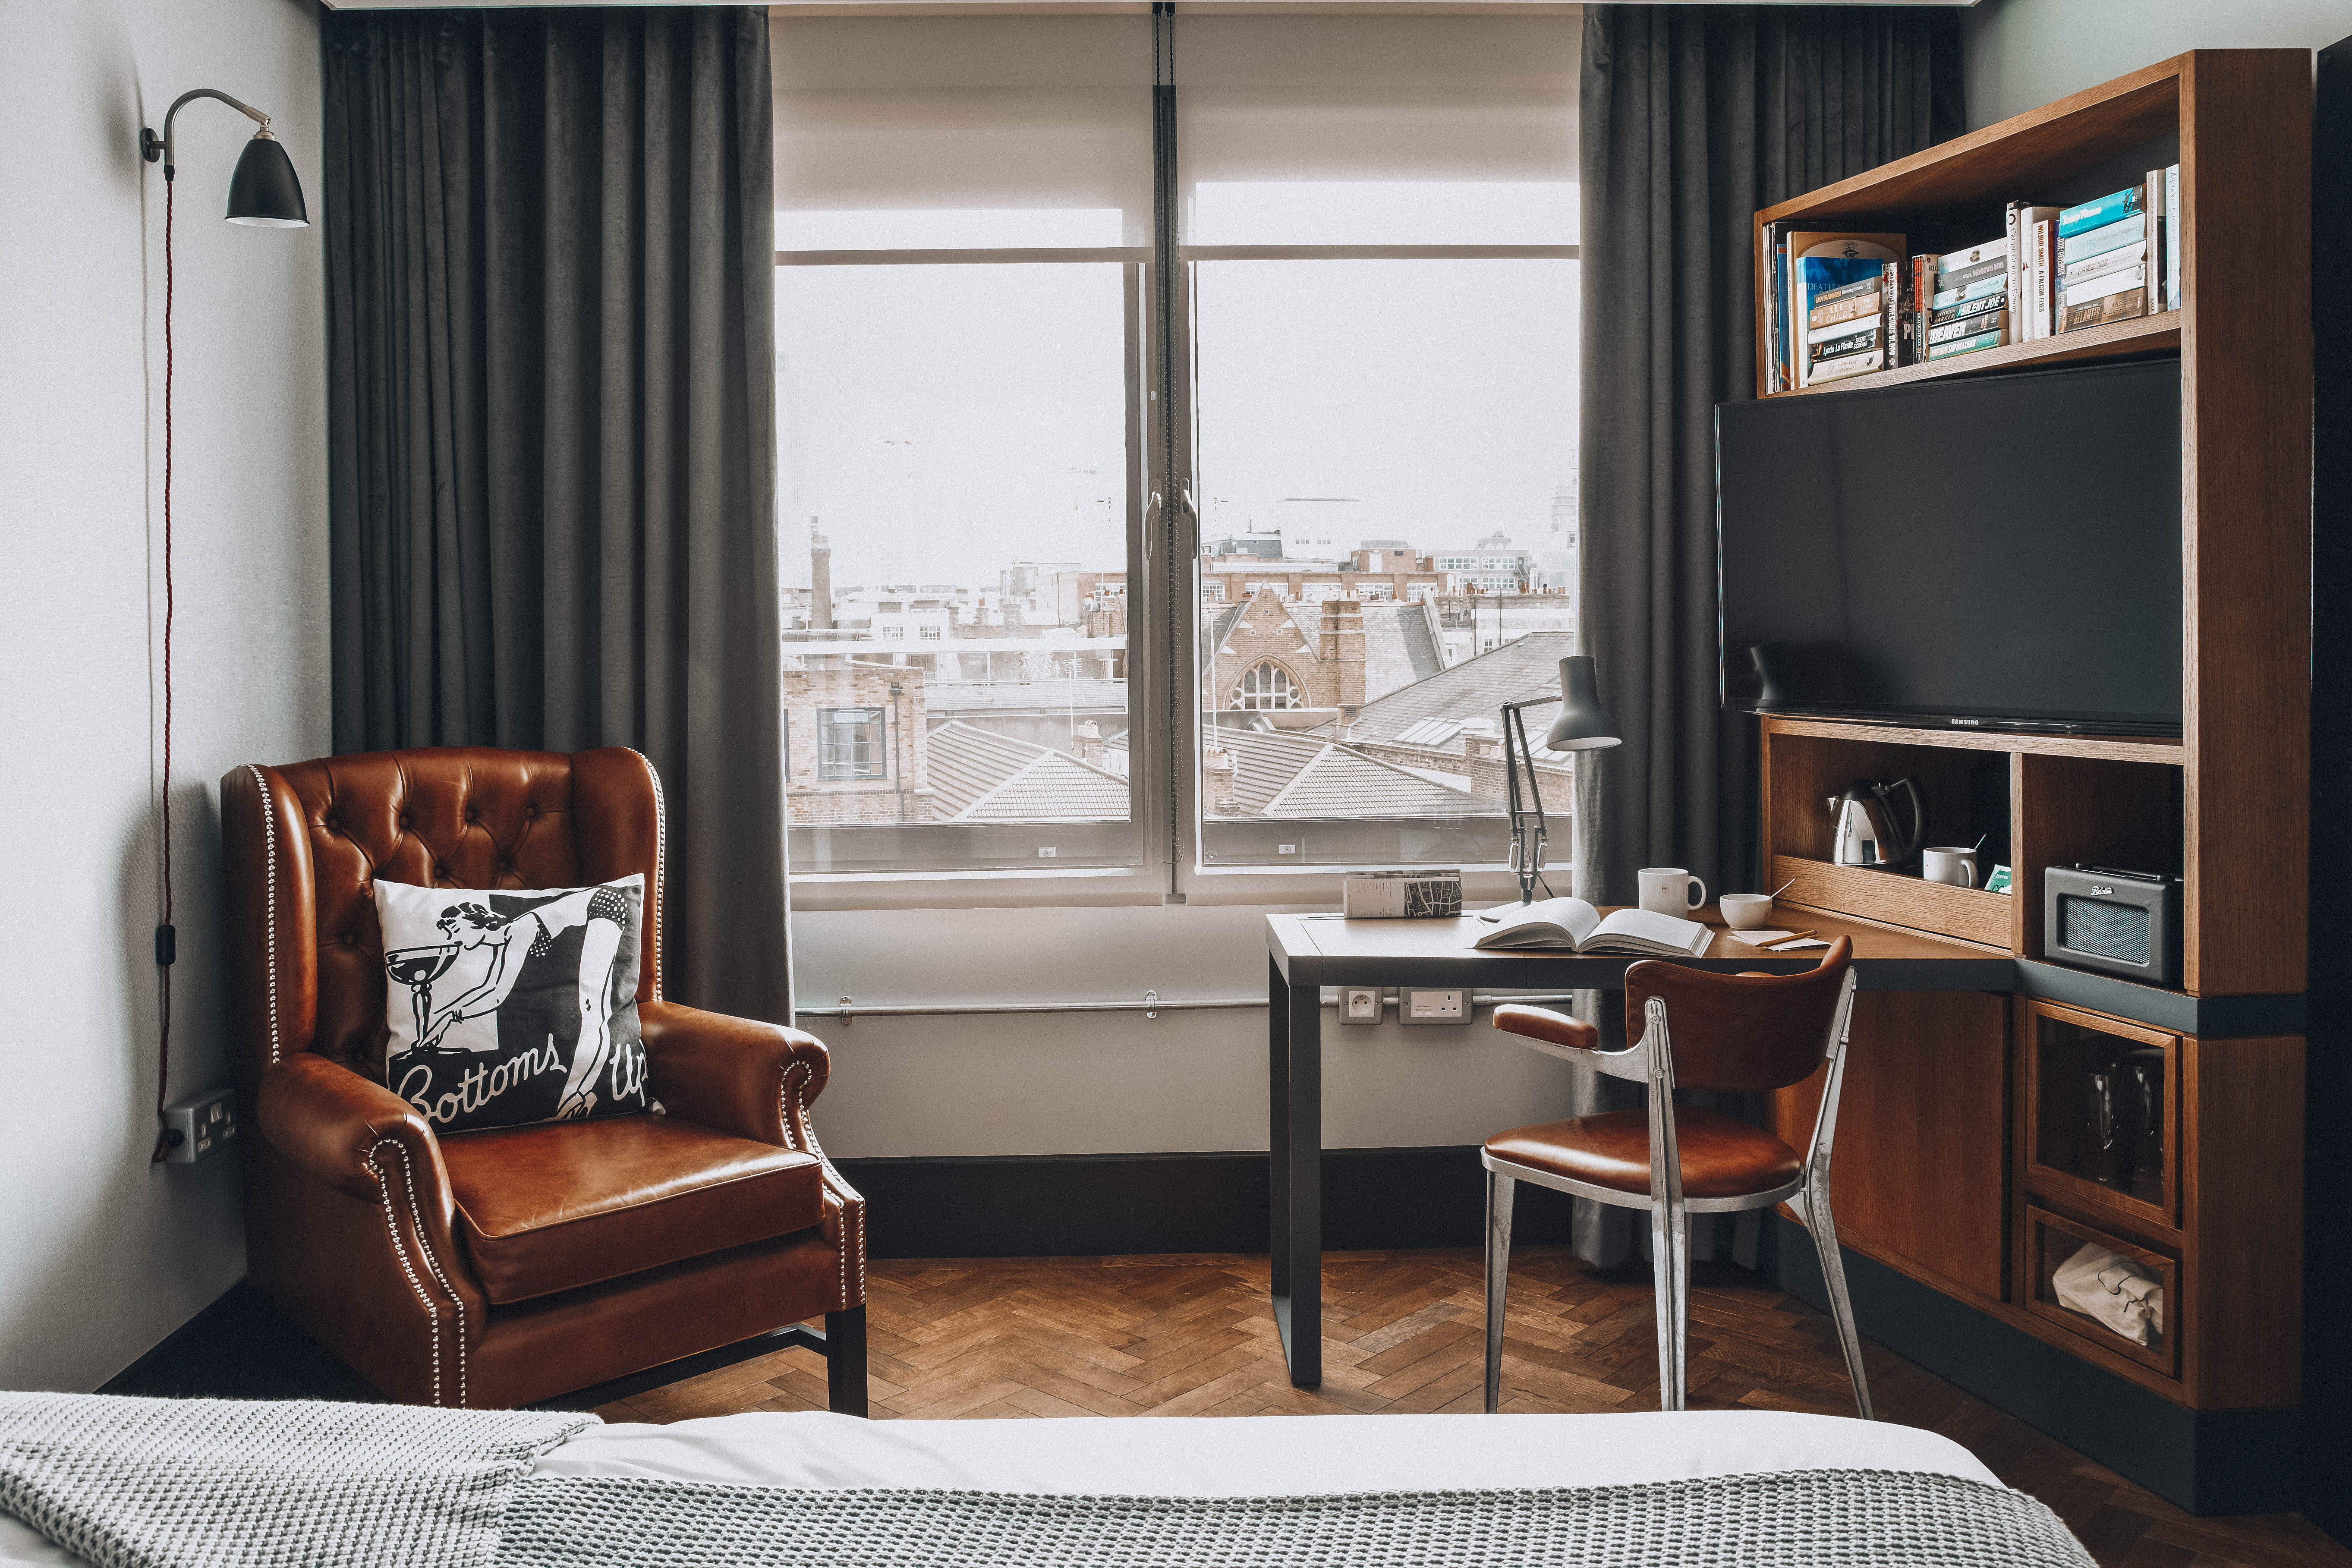 the Hoxton Shoreditch - hotels in London